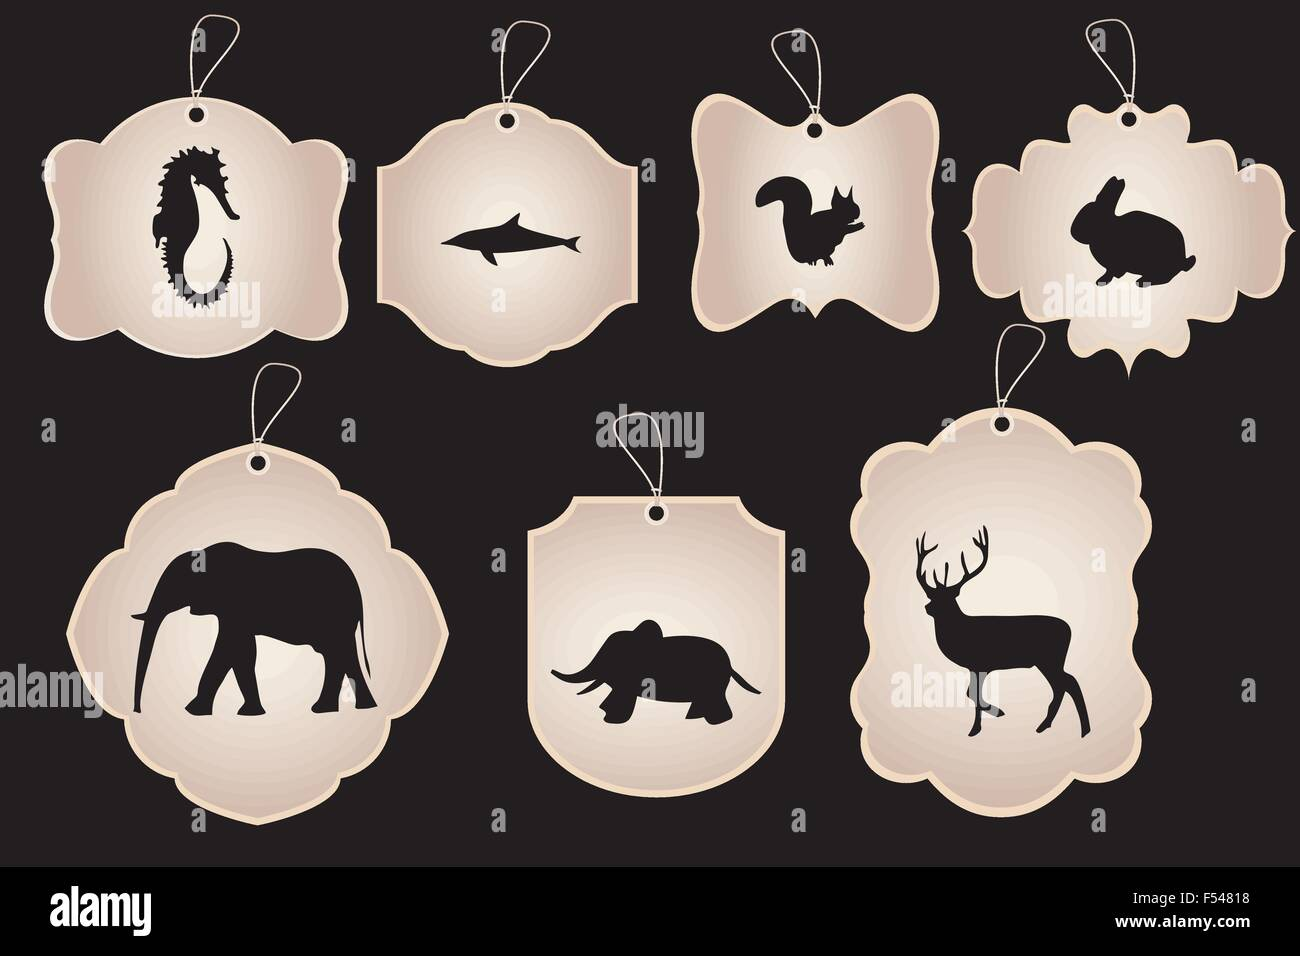 Vintage stickers in various forms with silhouettes of animals isolated on black - Stock Image